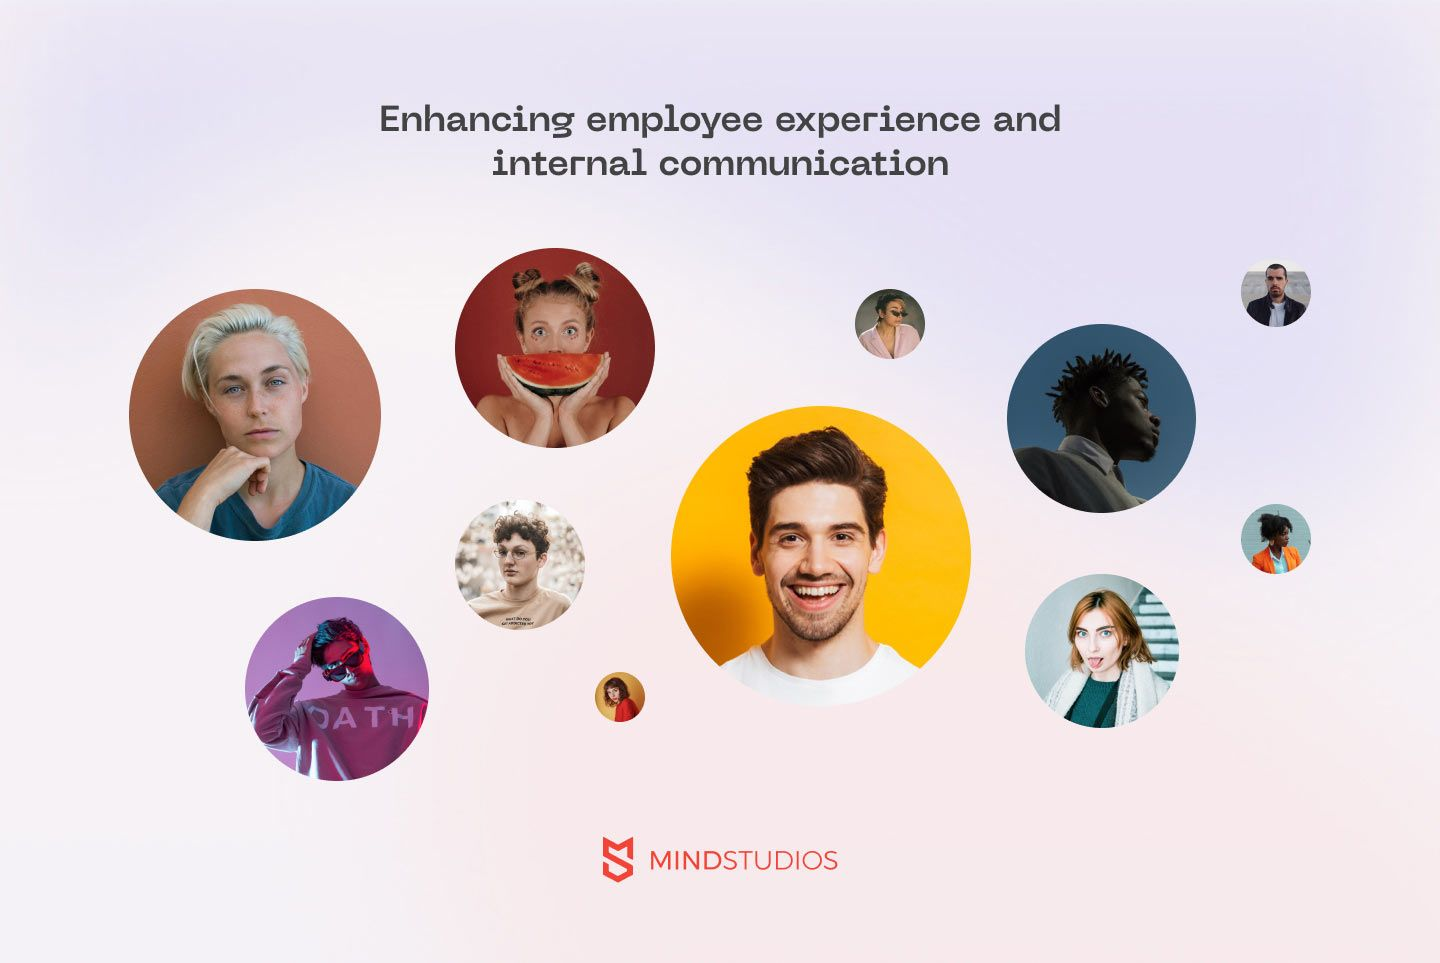 Enhancing employee experience and internal communication